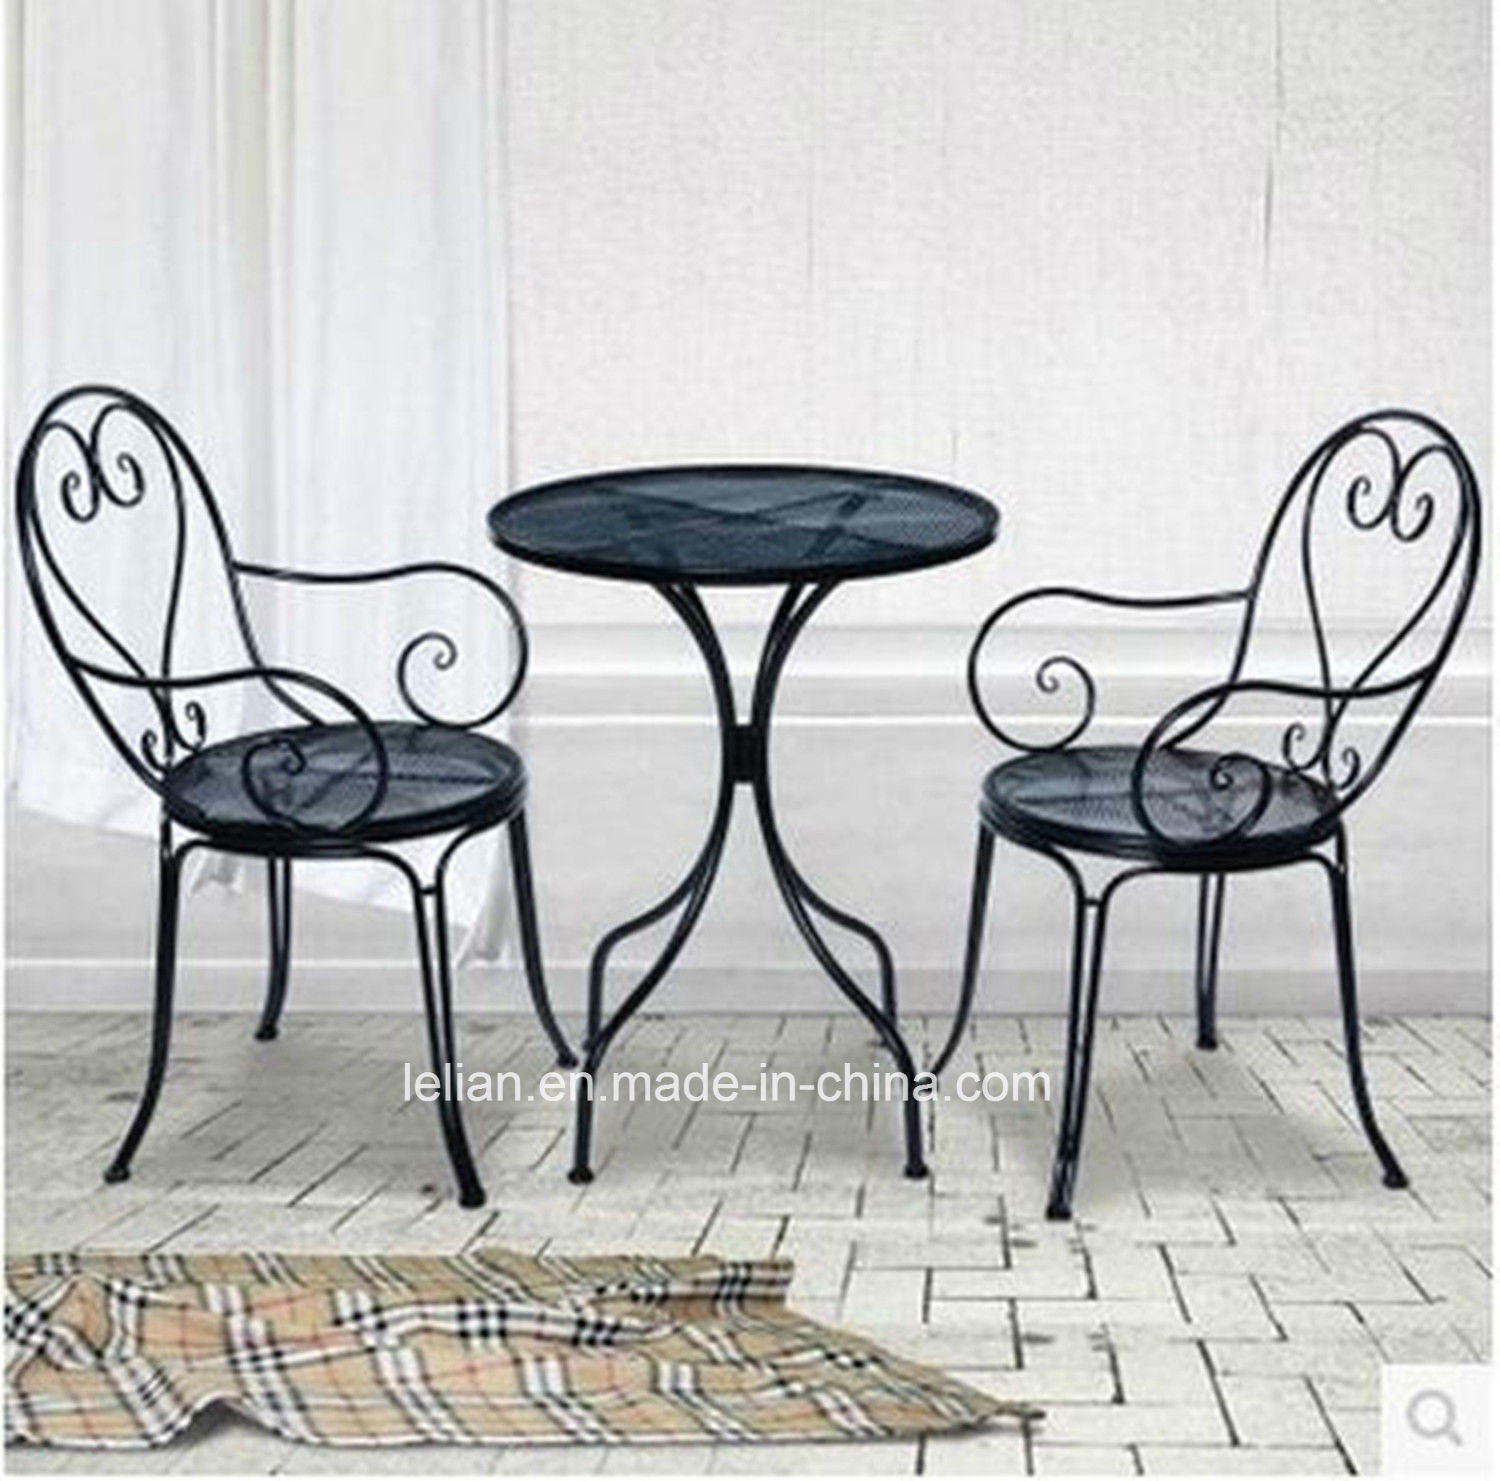 [Hot Item] Outdoor Garden Furniture Iron Table and Chair Set (LL-WST8)